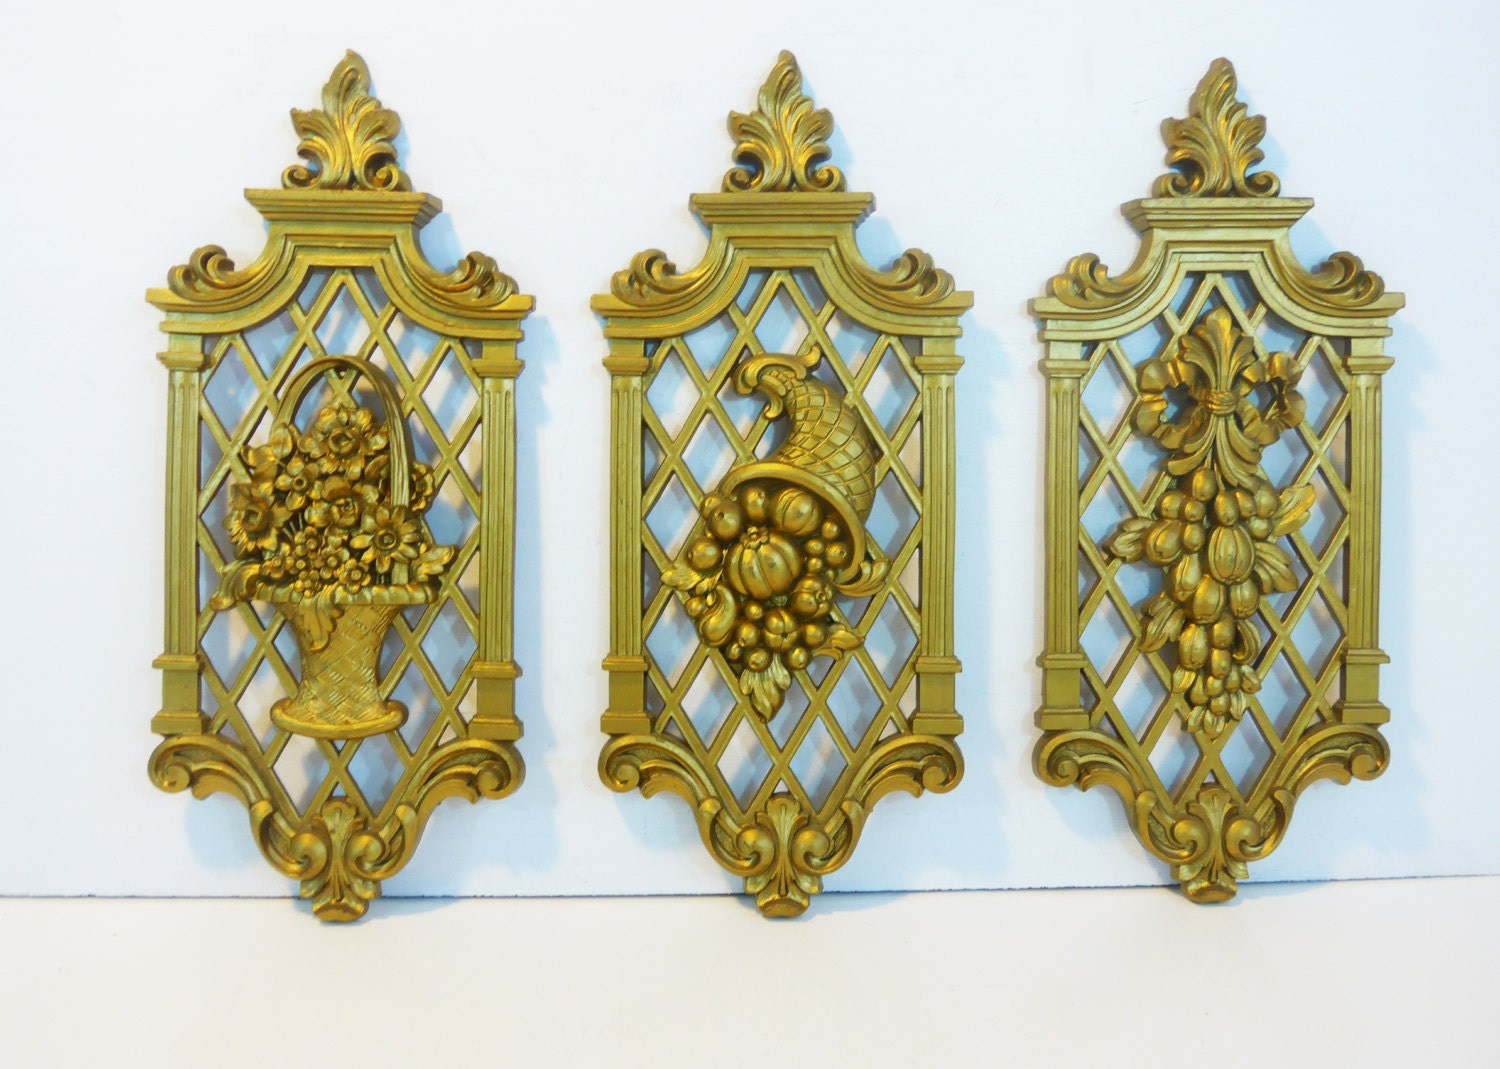 Set 3 Vintage Gold Ornate Dart Wall Hangings Dated 1971 Mid